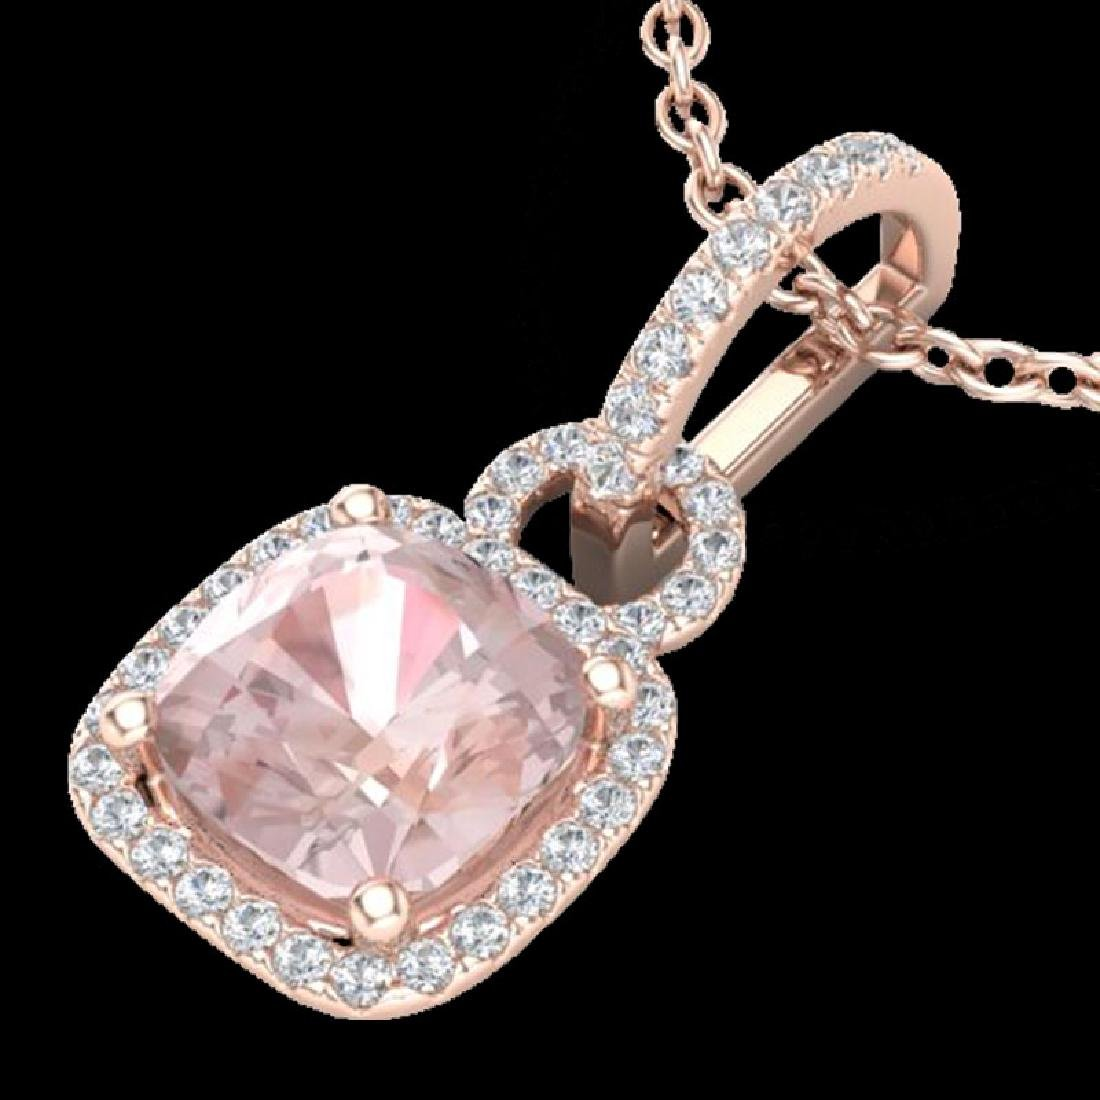 2.75 CTW Morganite & Micro VS/SI Diamond Halo Necklace